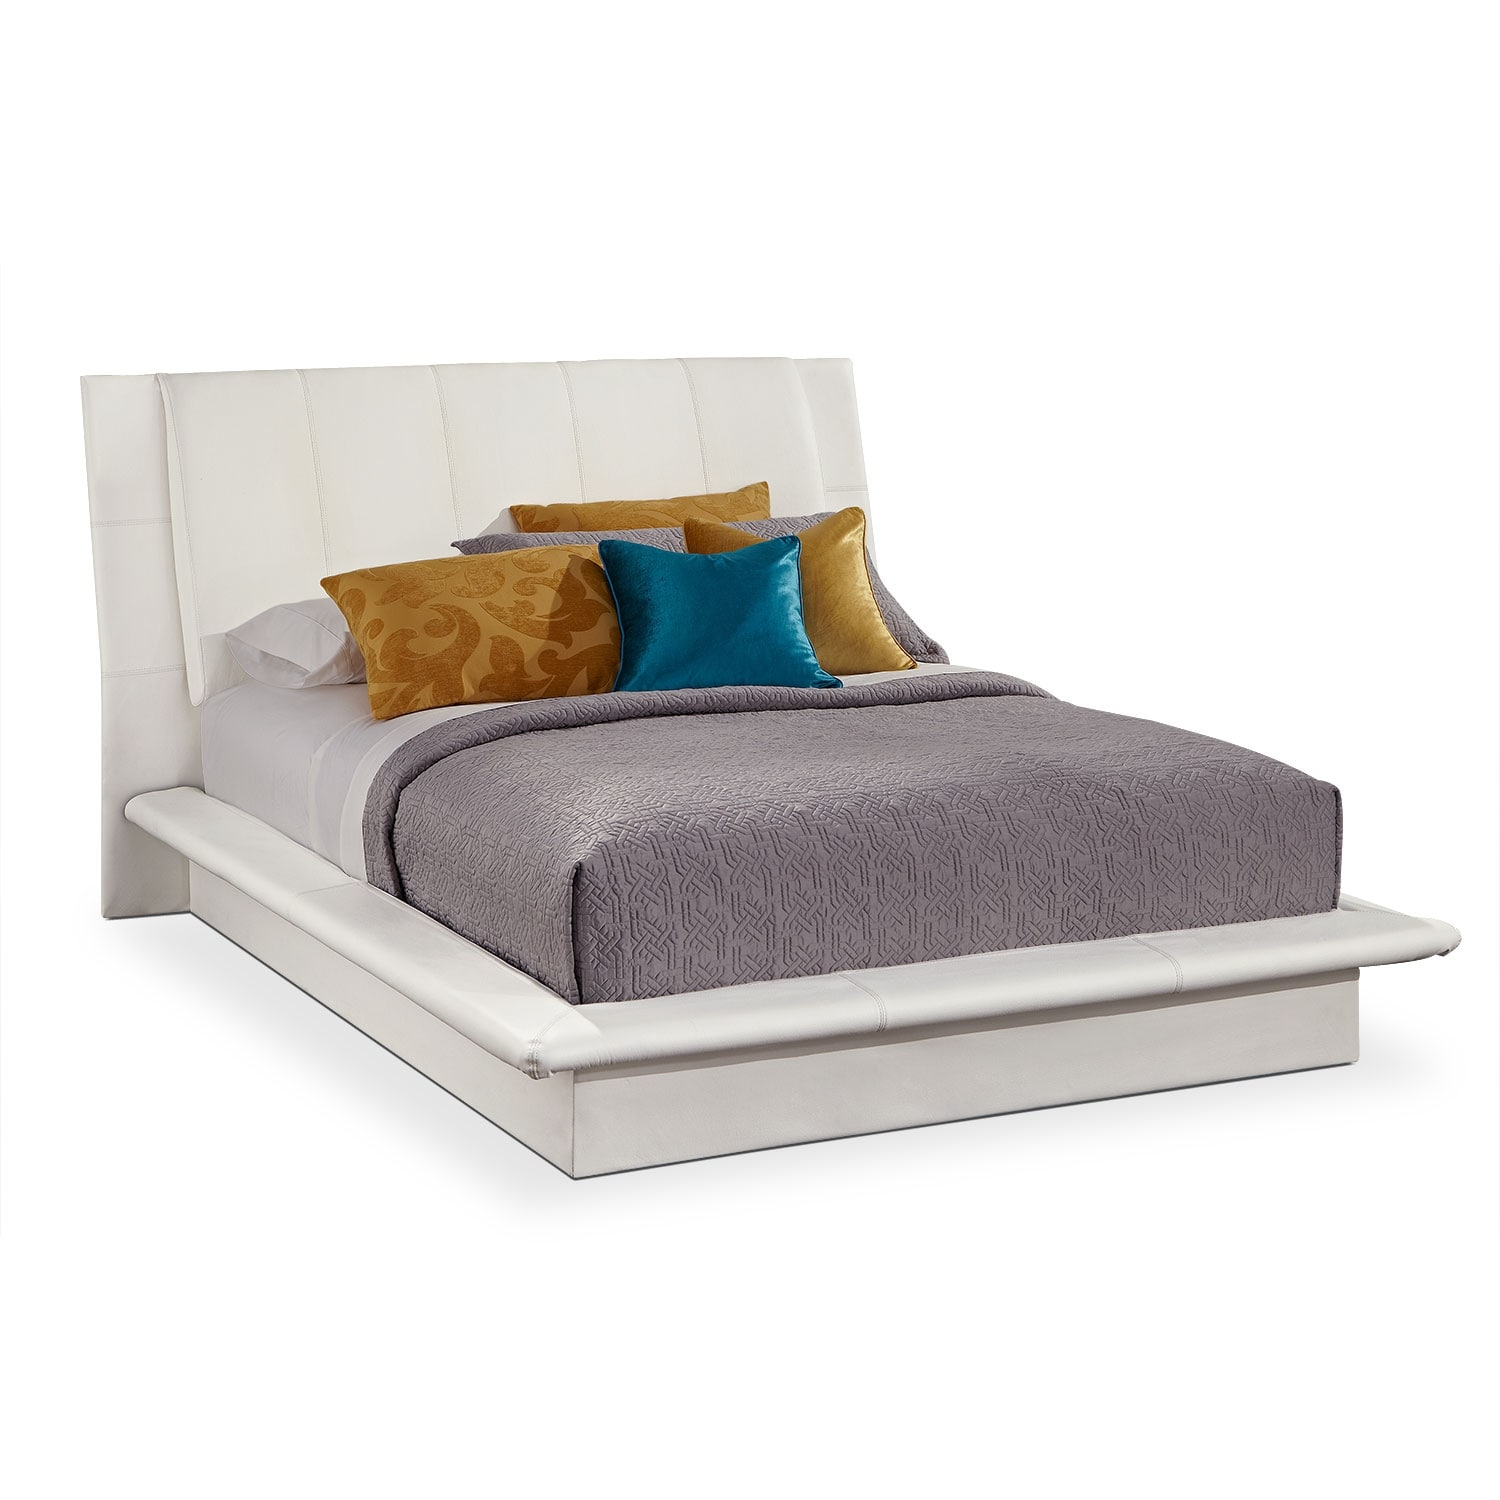 Dimora queen upholstered bed white value city furniture for Bedroom furniture beds